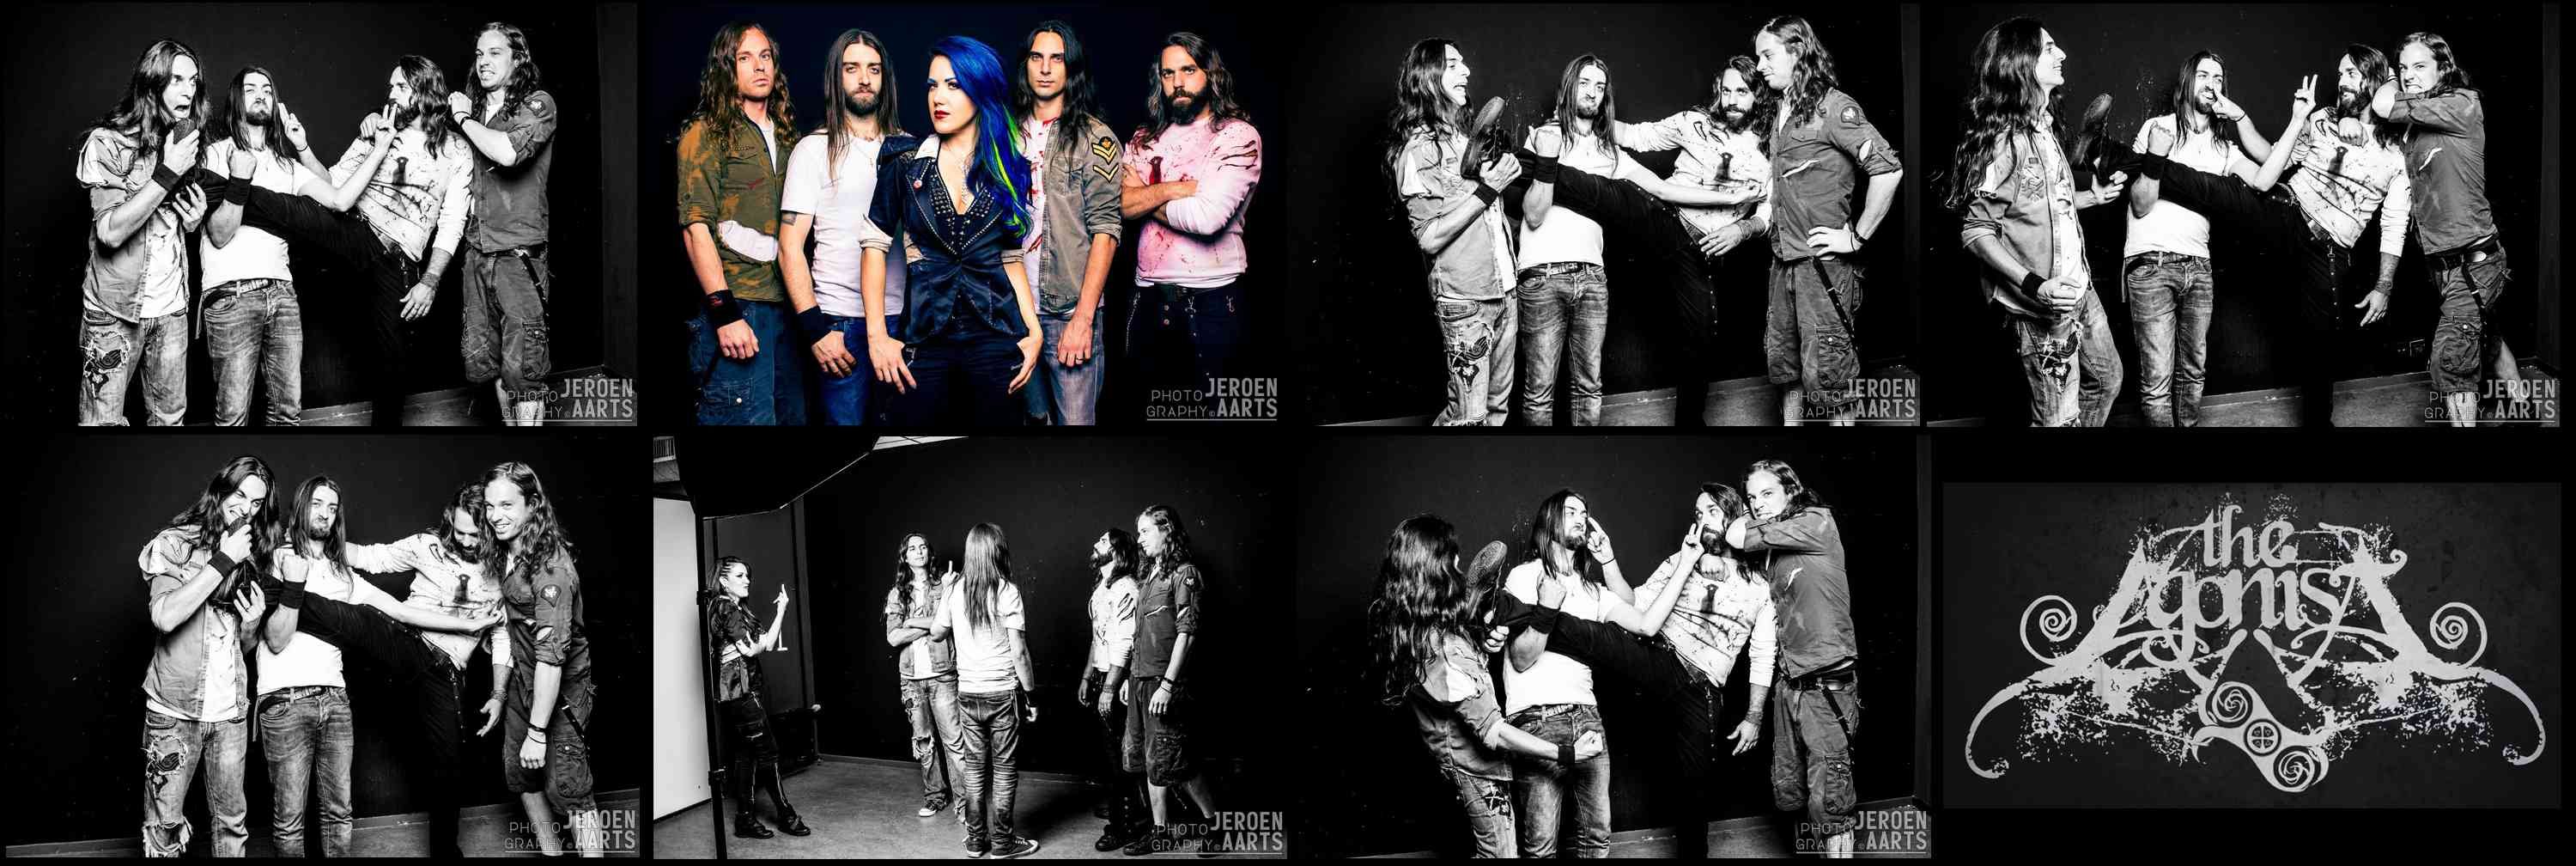 Mes petits montages photos ... - Page 8 The_ag11